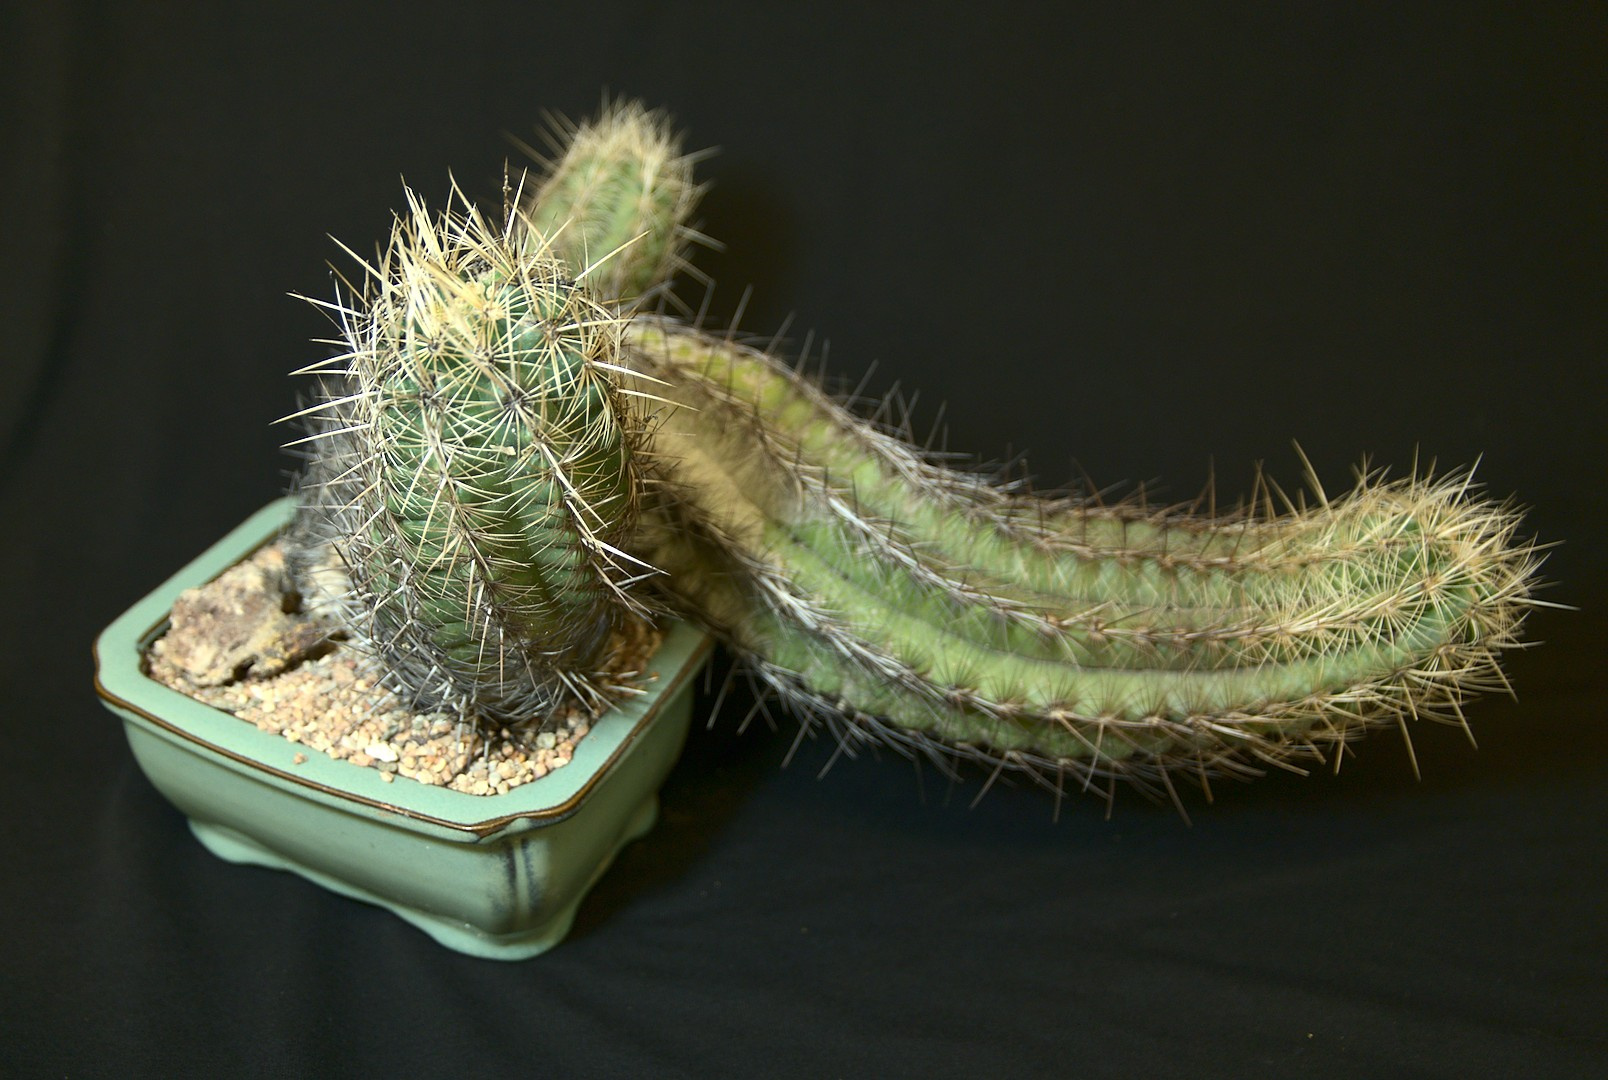 SCCSS 2019 March - Winner Open Cactus - Gary Duke - Thelocactus bicolor var. kolunsis